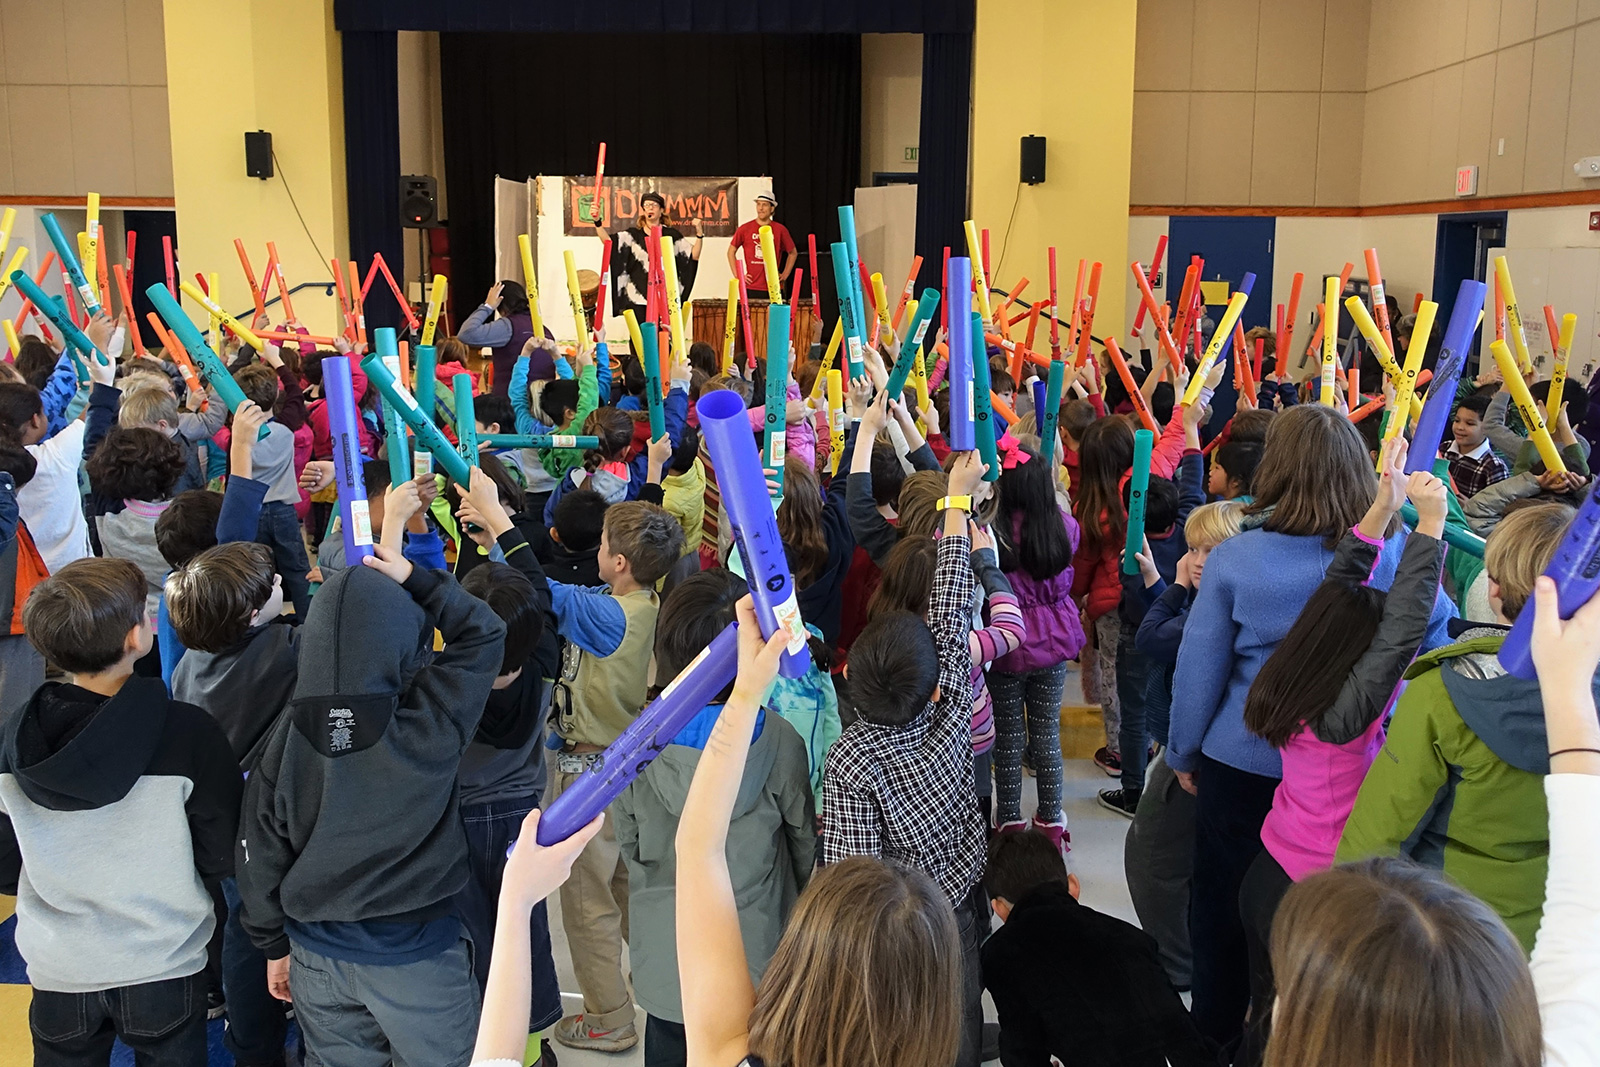 assembly of kids boomwhackers